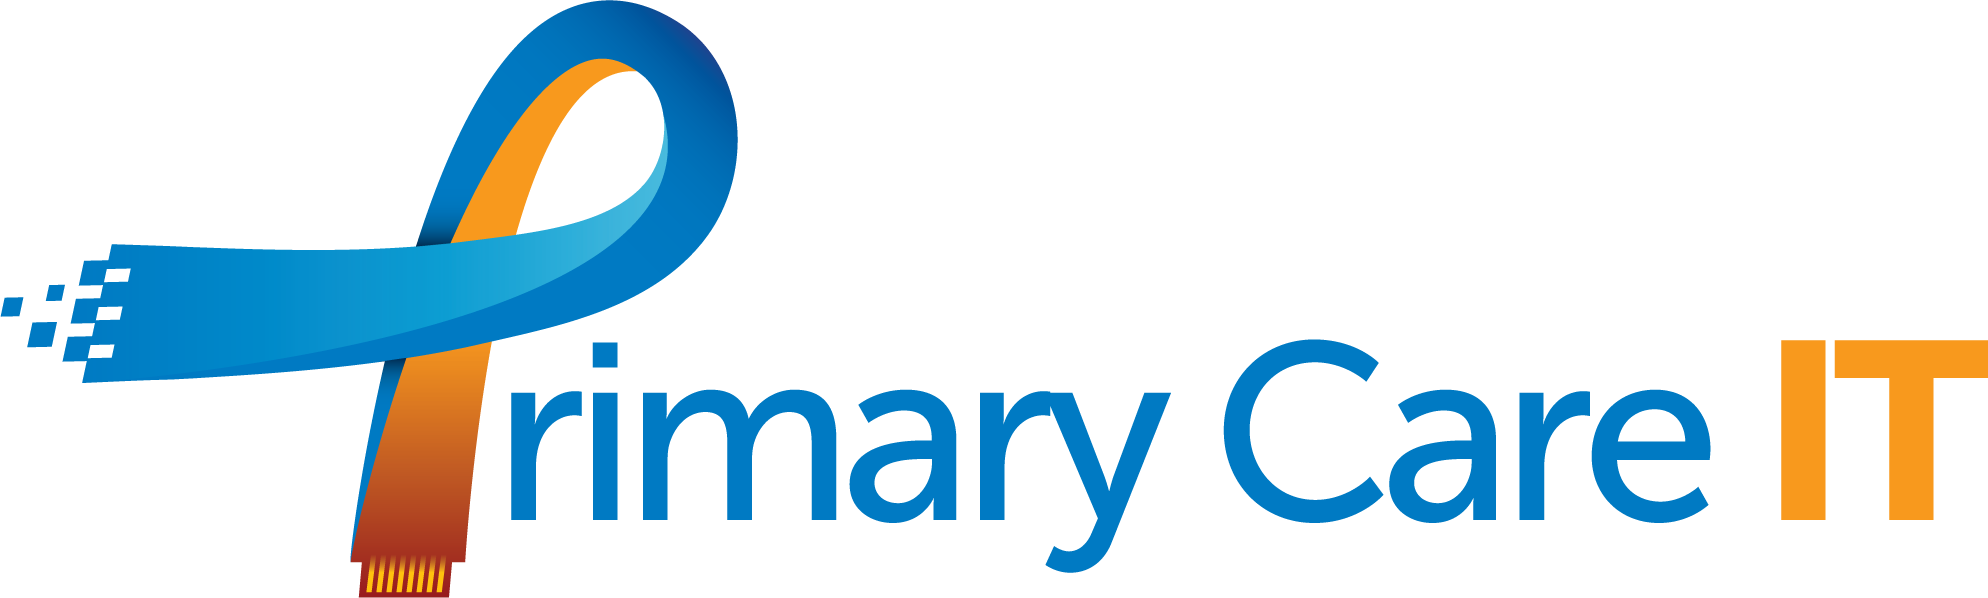 Colney Radiology Group